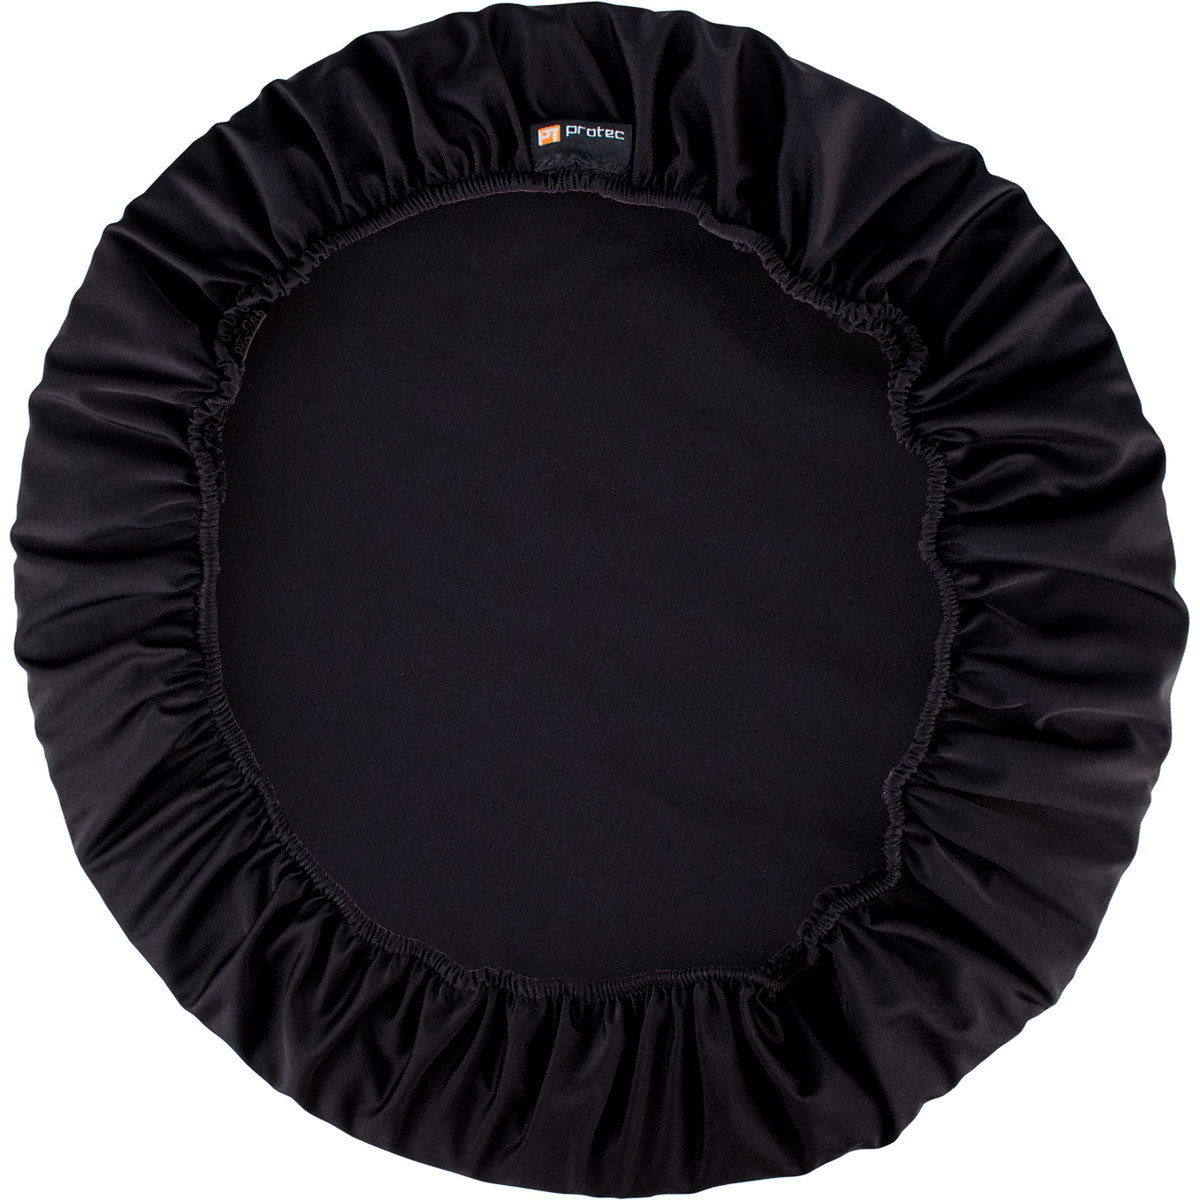 Protec Large Bell Cover for Tuba or Marching Tuba